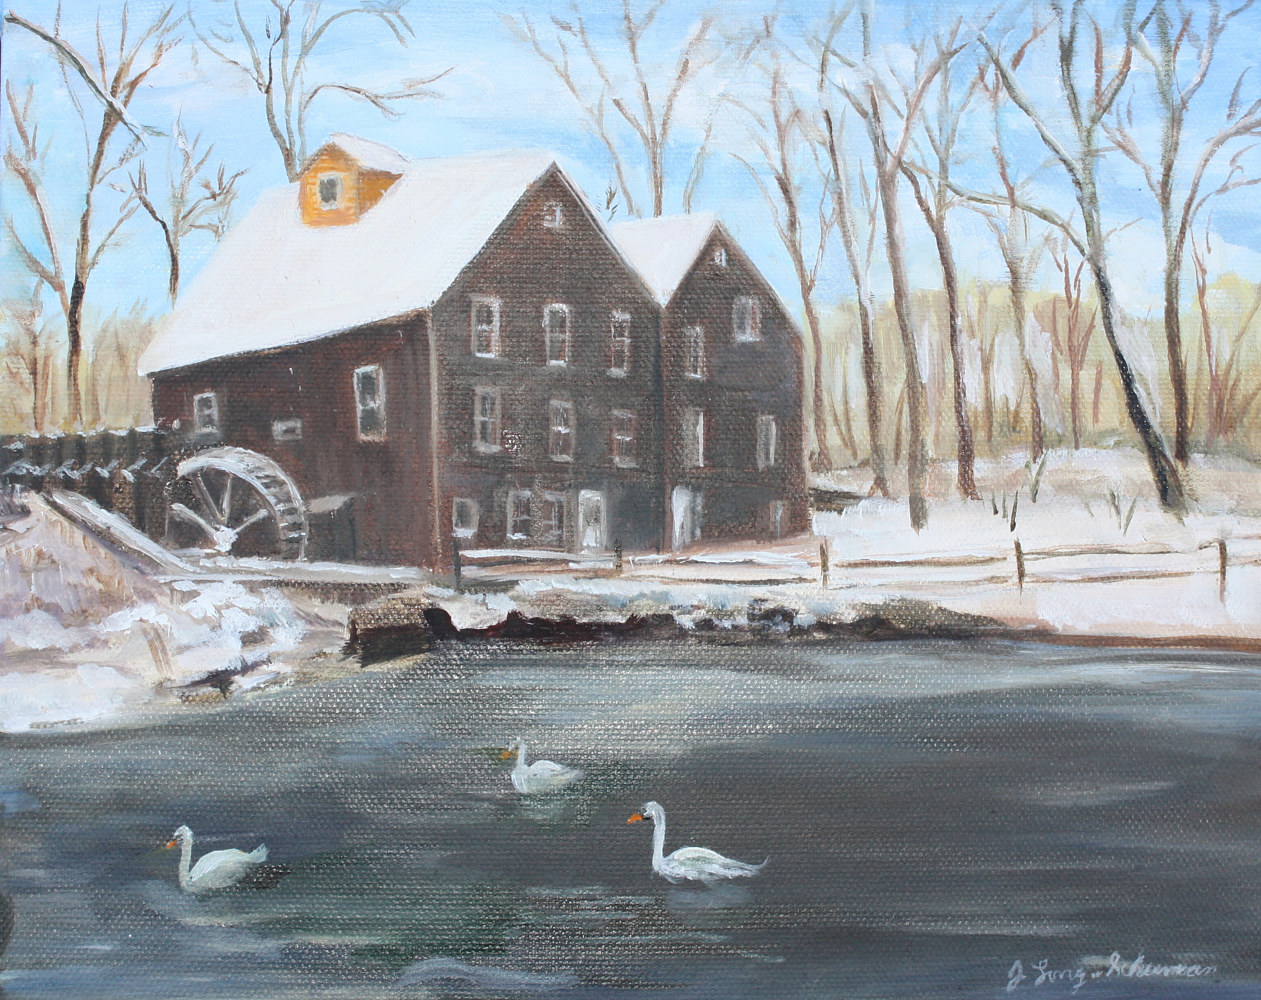 Oil painting Stony Brook Grist Mill by June Long-schuman